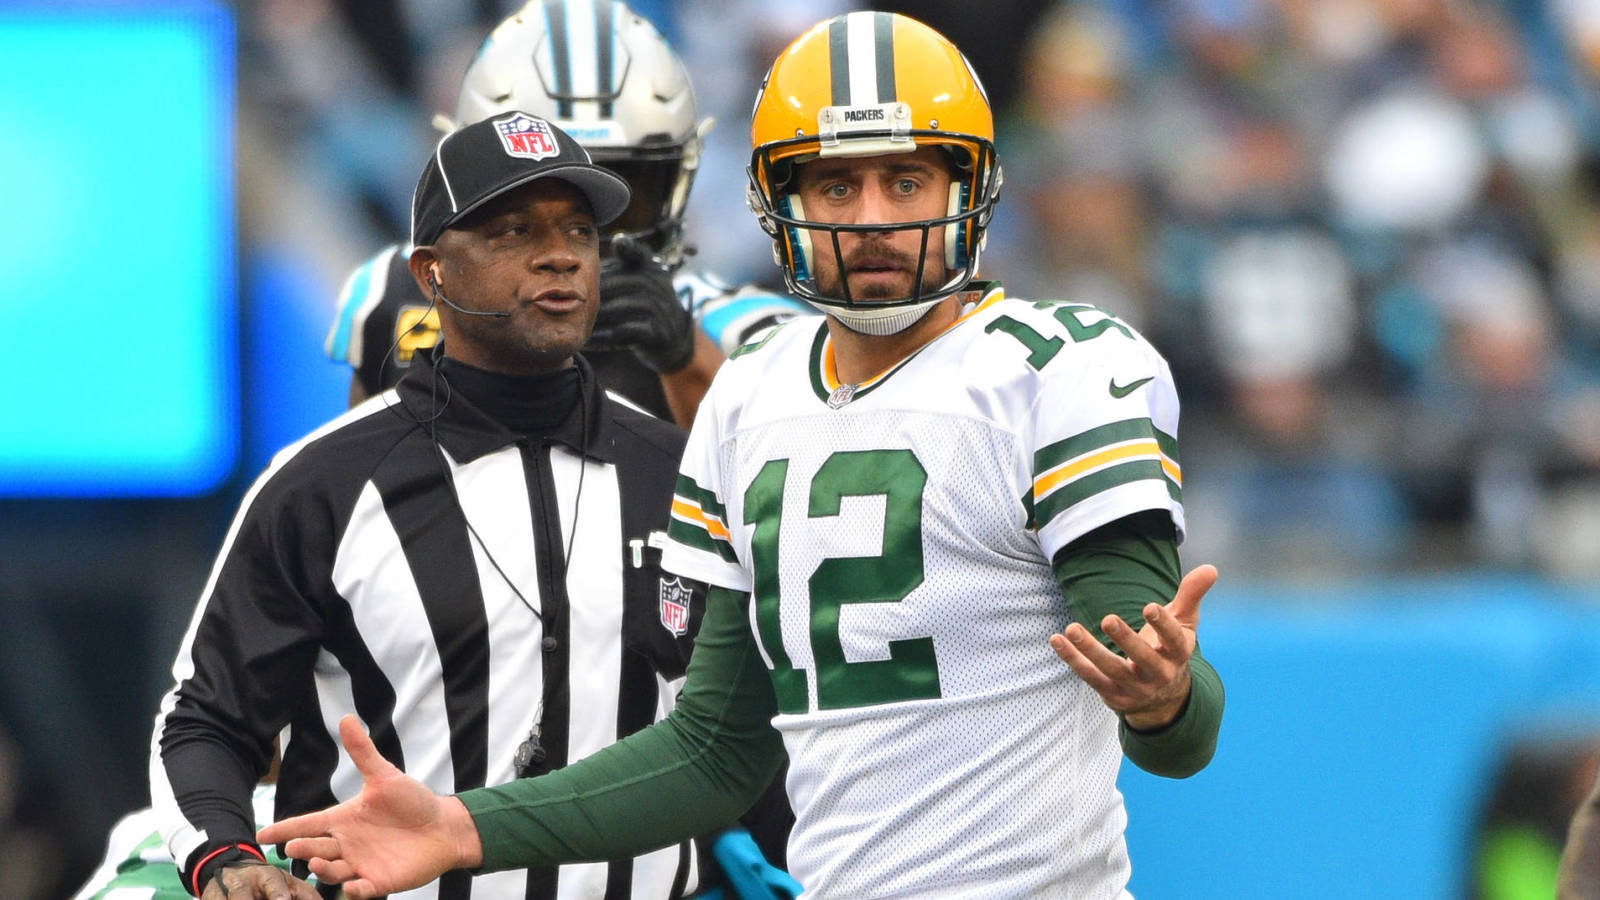 Packers Place Aaron Rodgers on Injured Reserve, Ending His Season